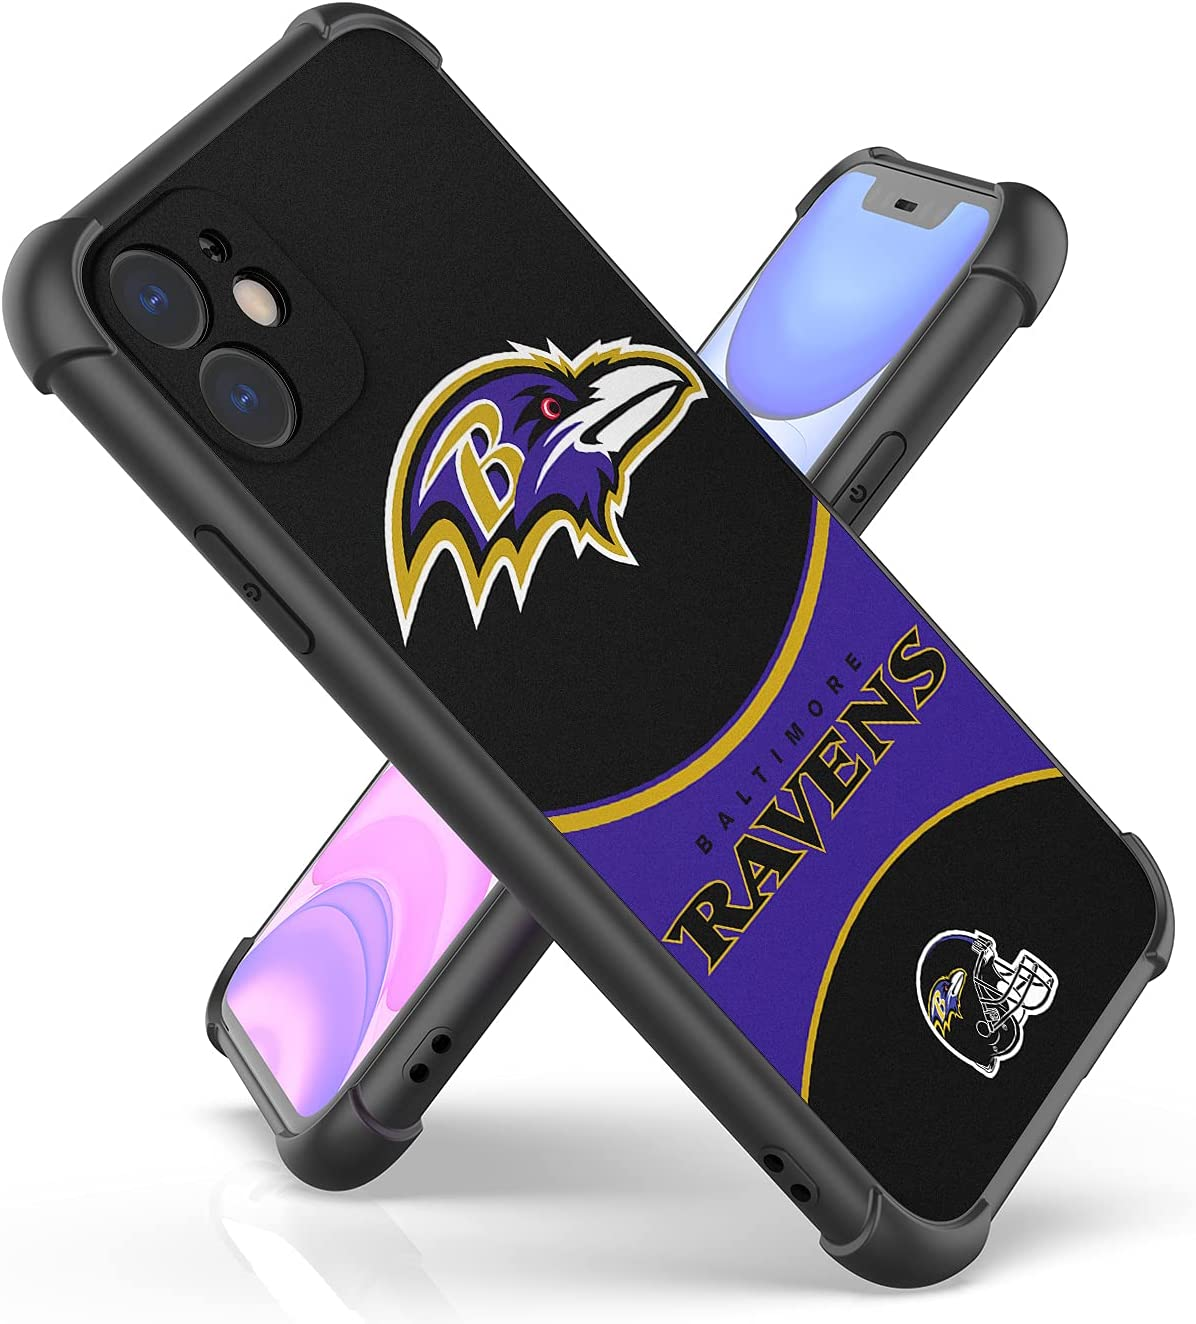 Football Sports Team Phone Case for iPhone 11 6.1 Inch, Fashion Cool Stylish Pattern Design Shockproof Cover for Men Women Teen Boys Girls (Black 01)